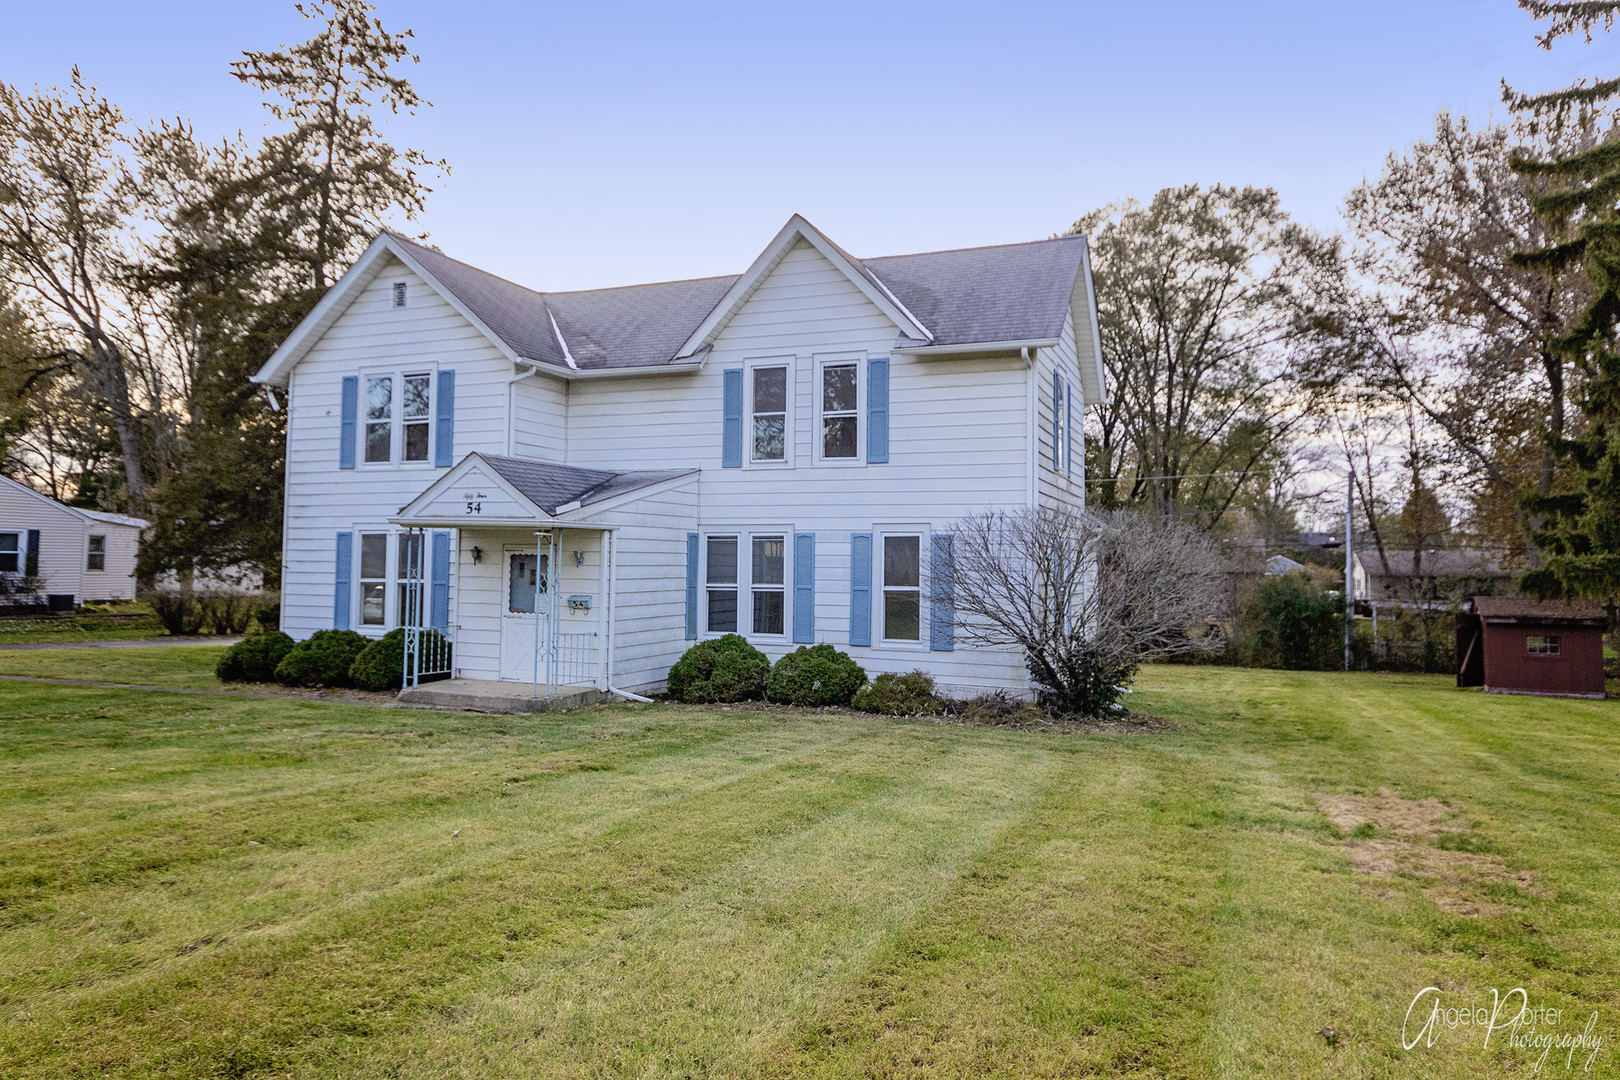 54 South Oak Street, Crystal Lake in Mc Henry County, IL 60014 Home for Sale